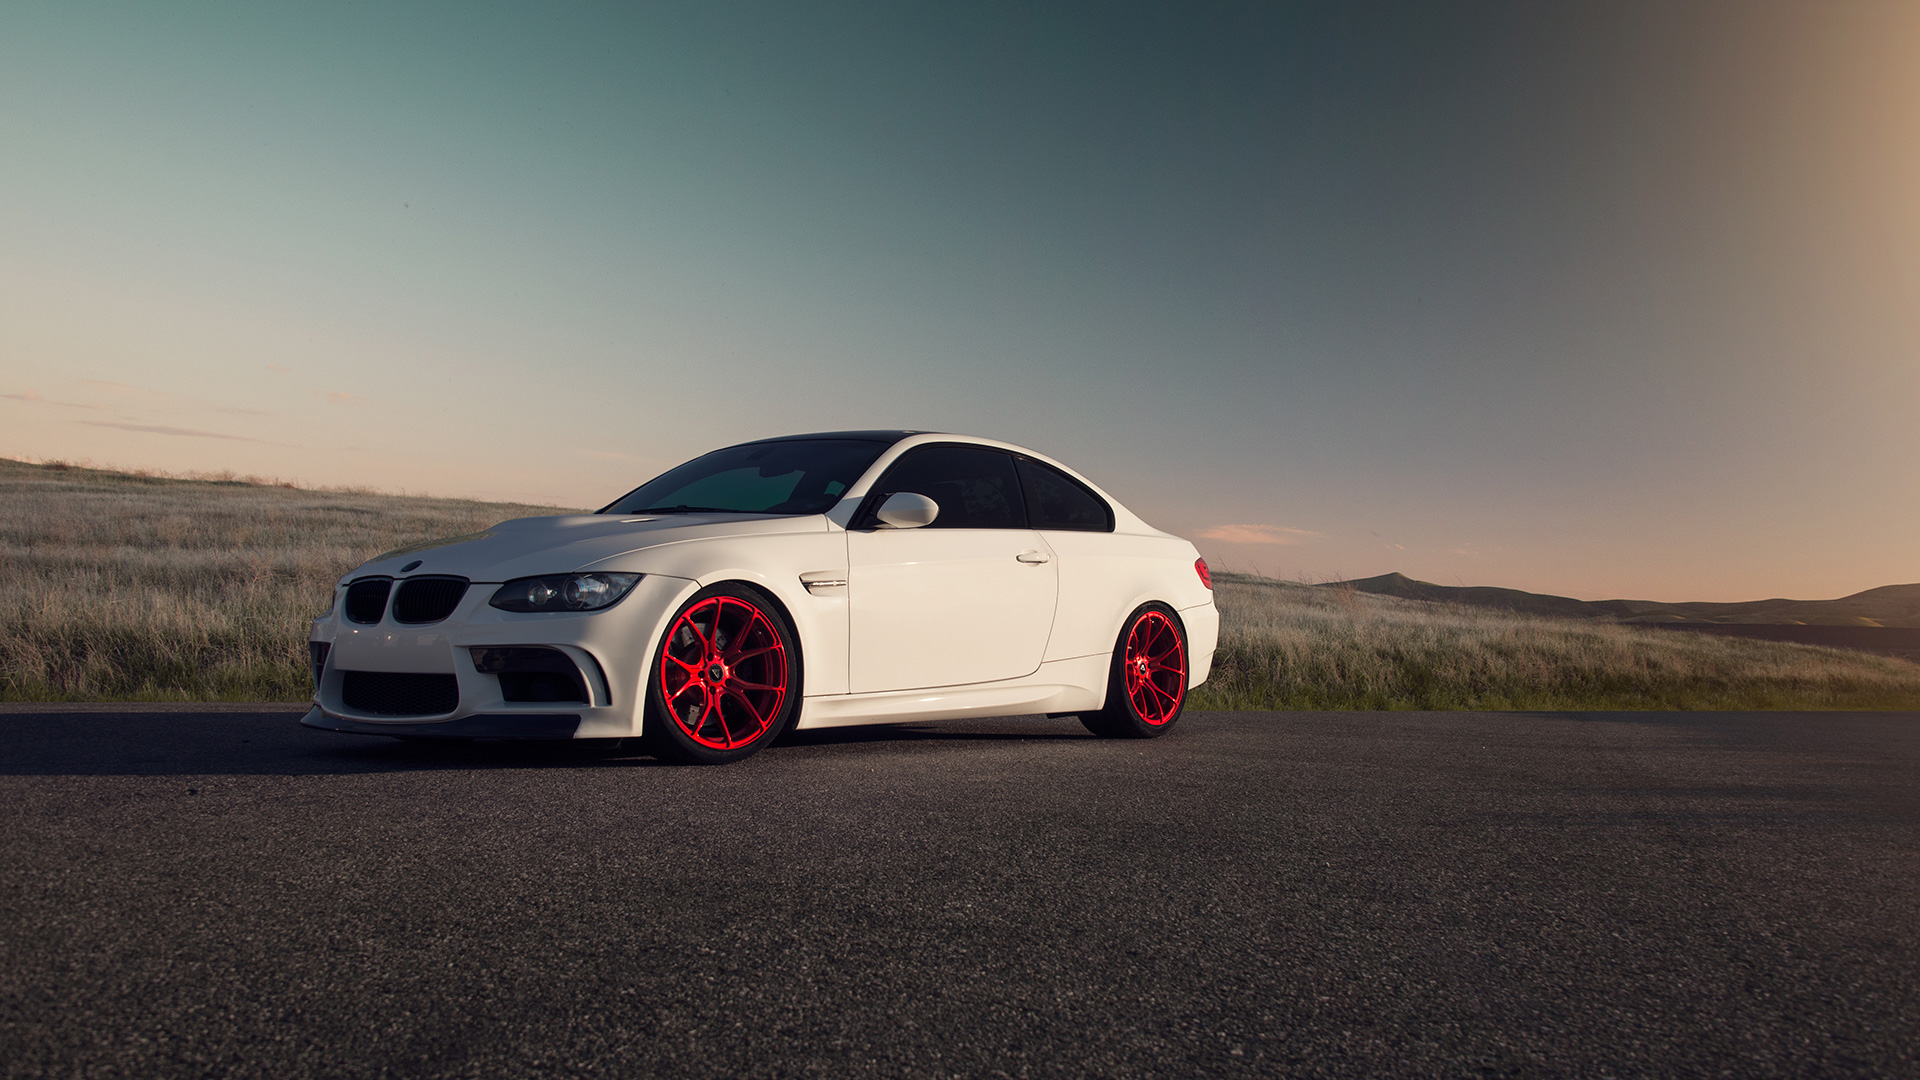 vorsteiner bmw e92 m3 wallpaper | hd car wallpapers | id #6549